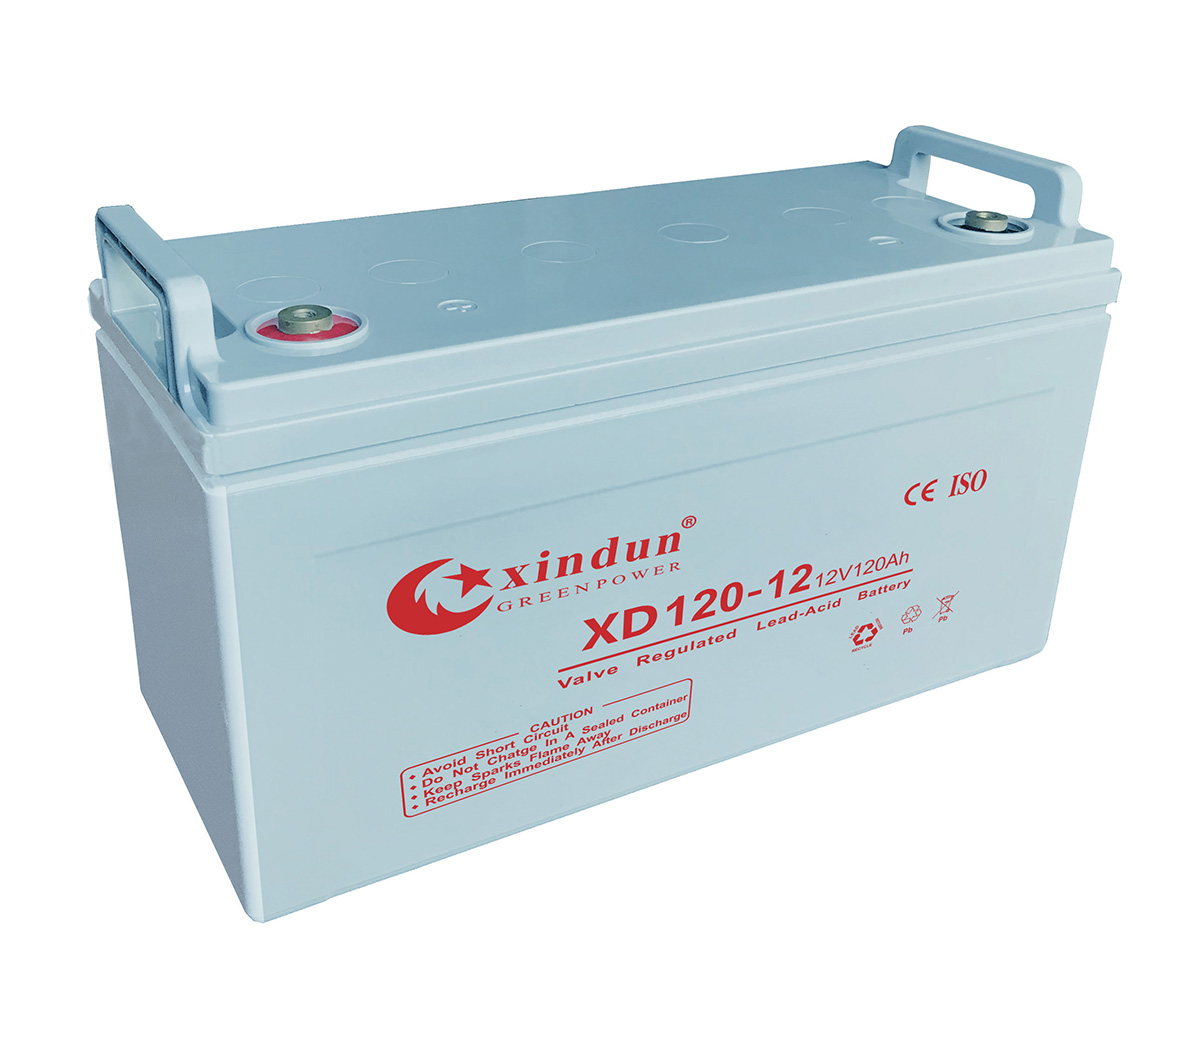 XD120-12 Battery (12V120Ah)